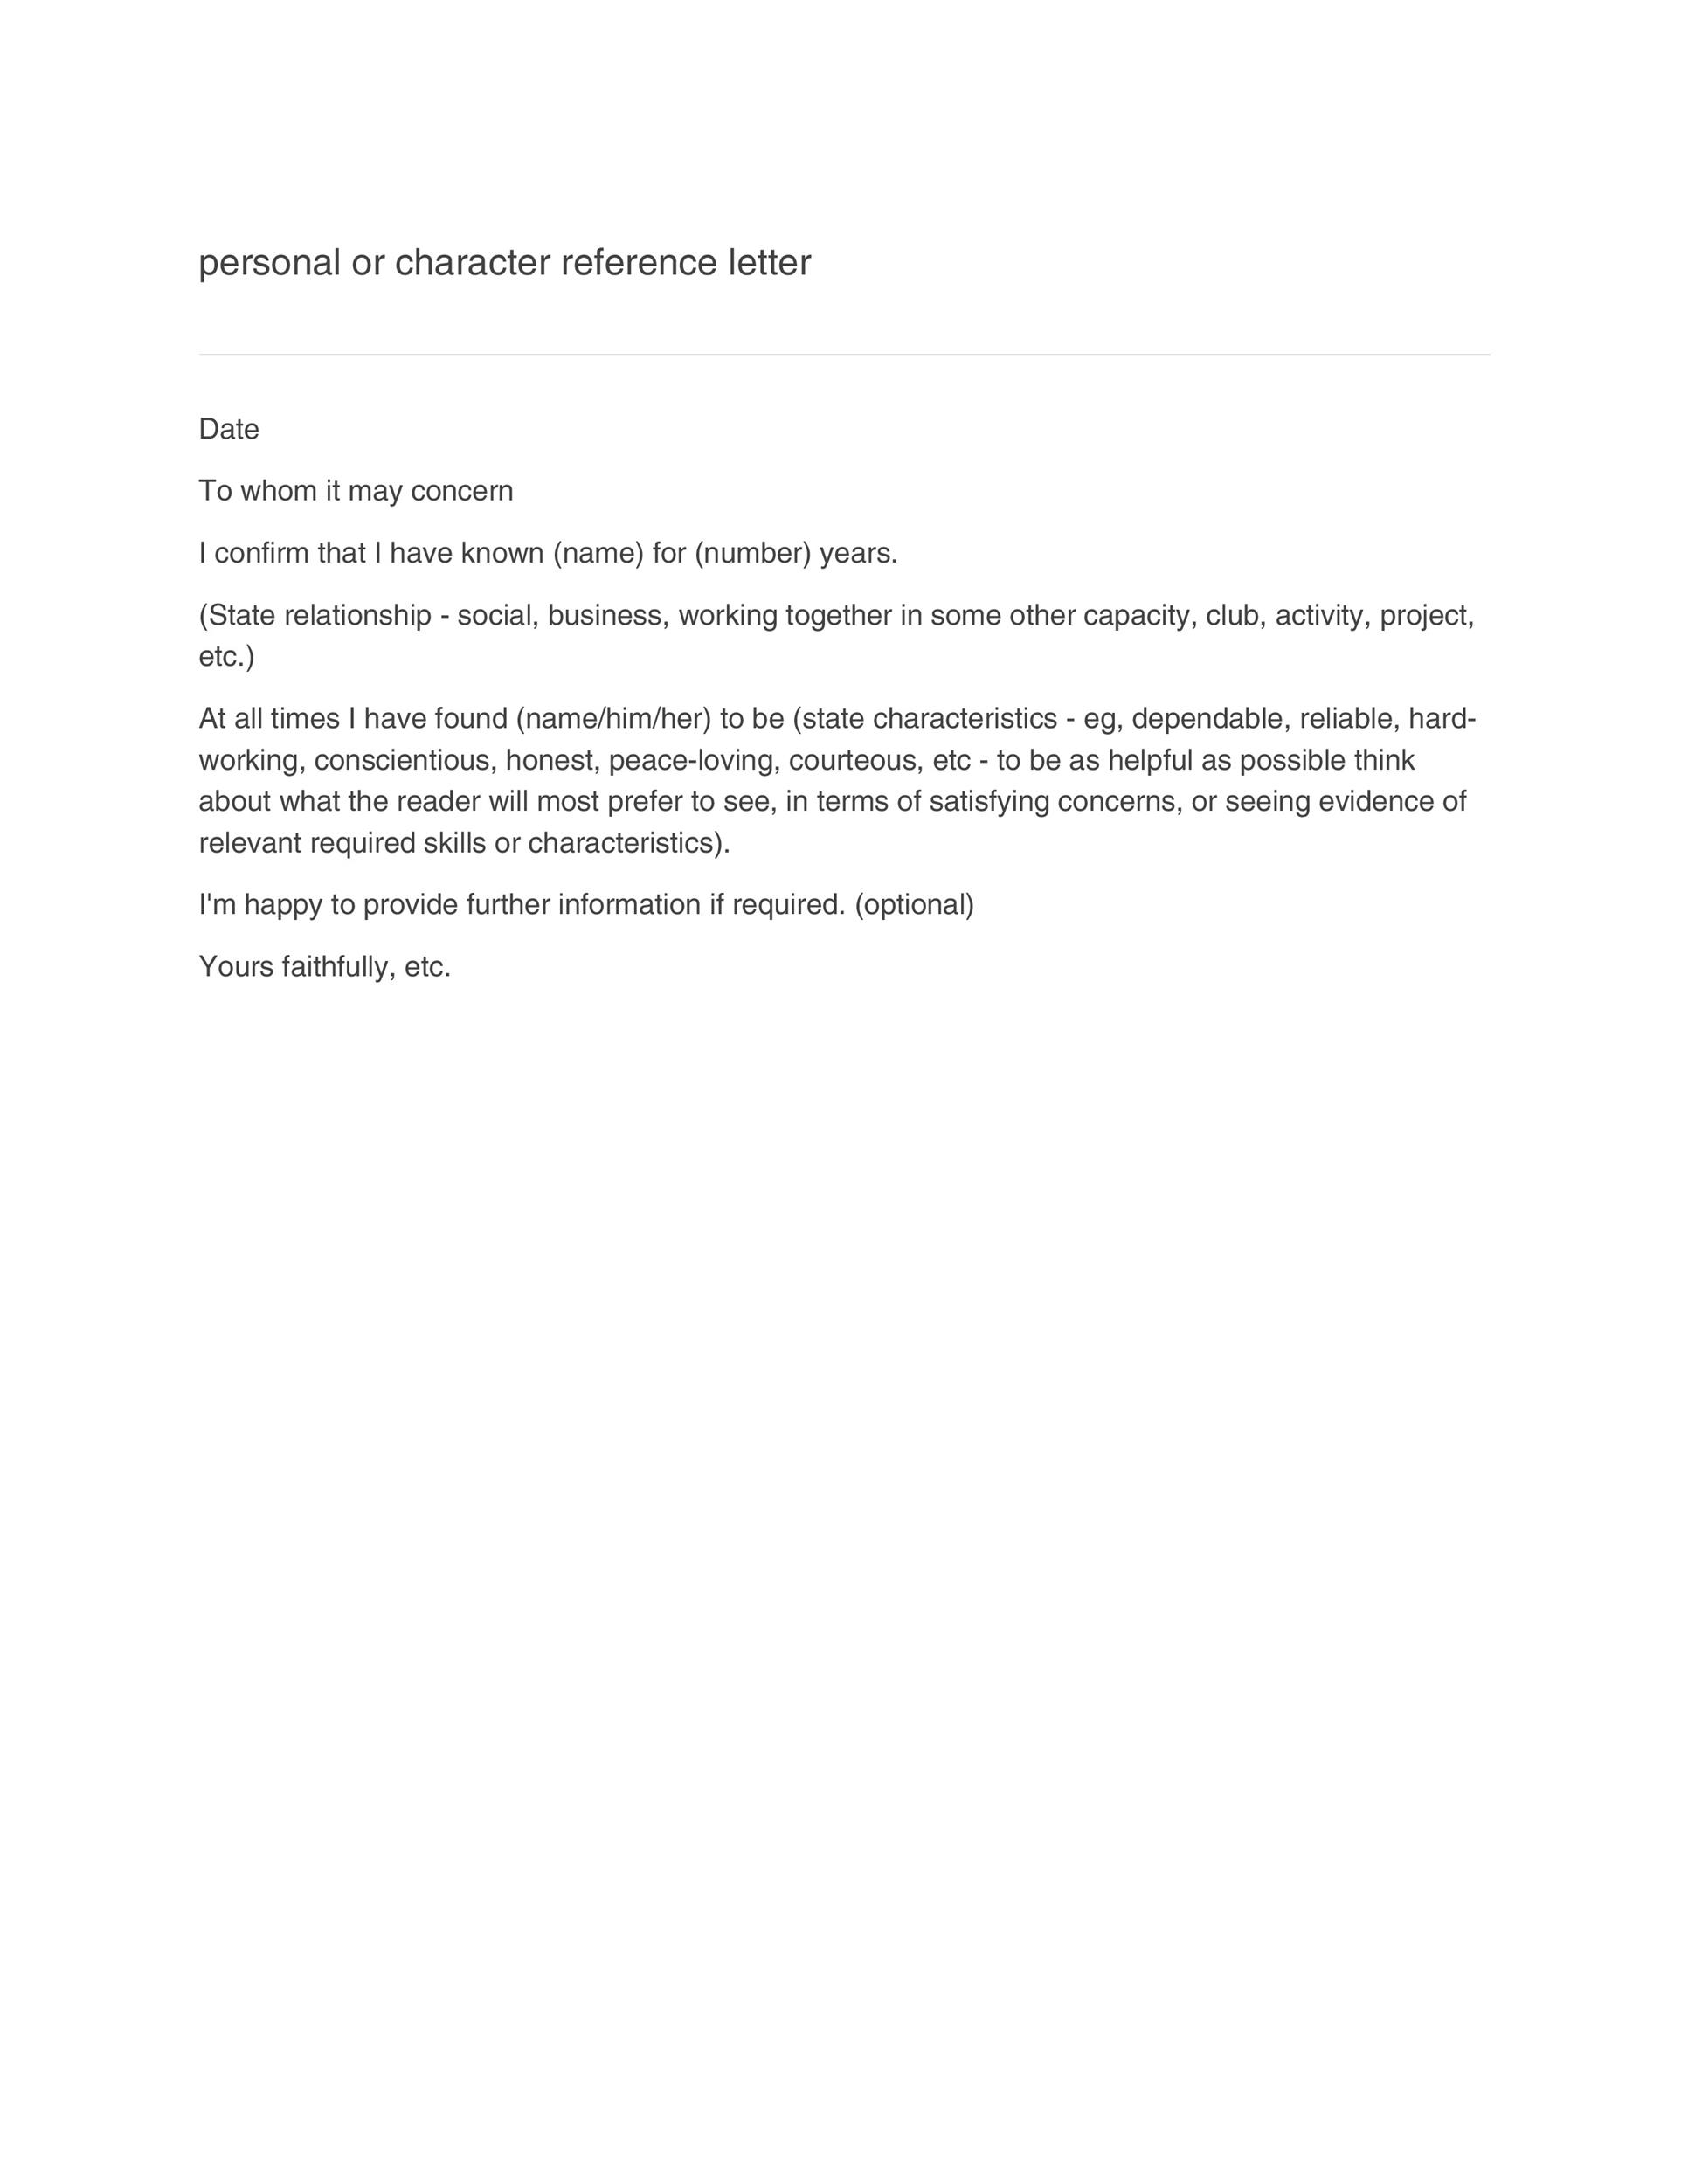 Personal Reference Letter Examples from templatelab.com